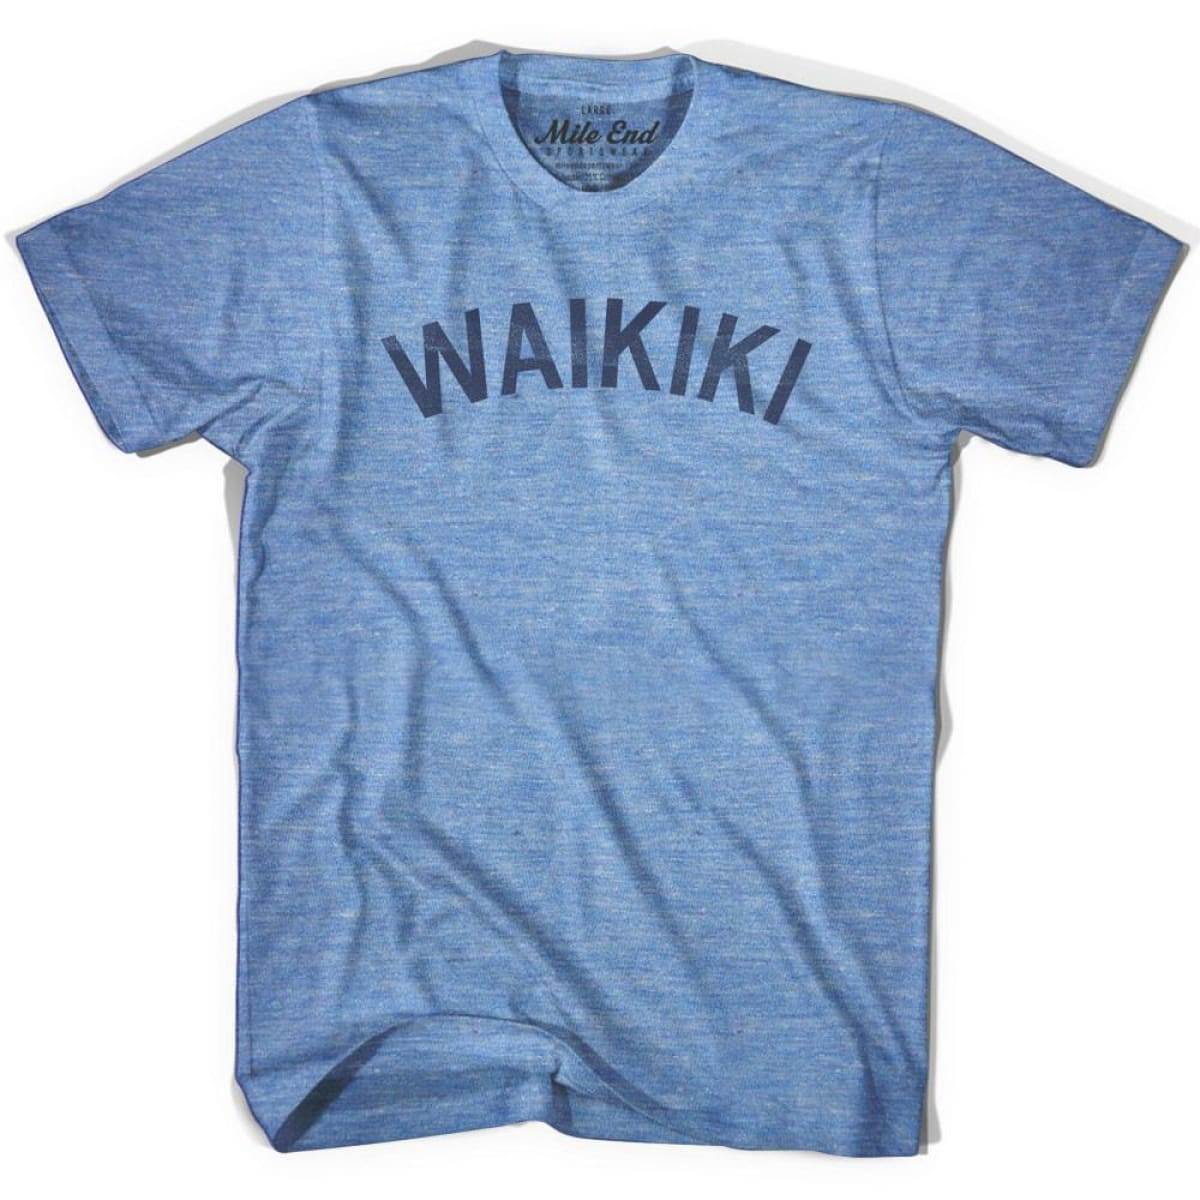 Waikiki City Vintage T-shirt - Athletic Blue / Adult X-Small - Mile End City